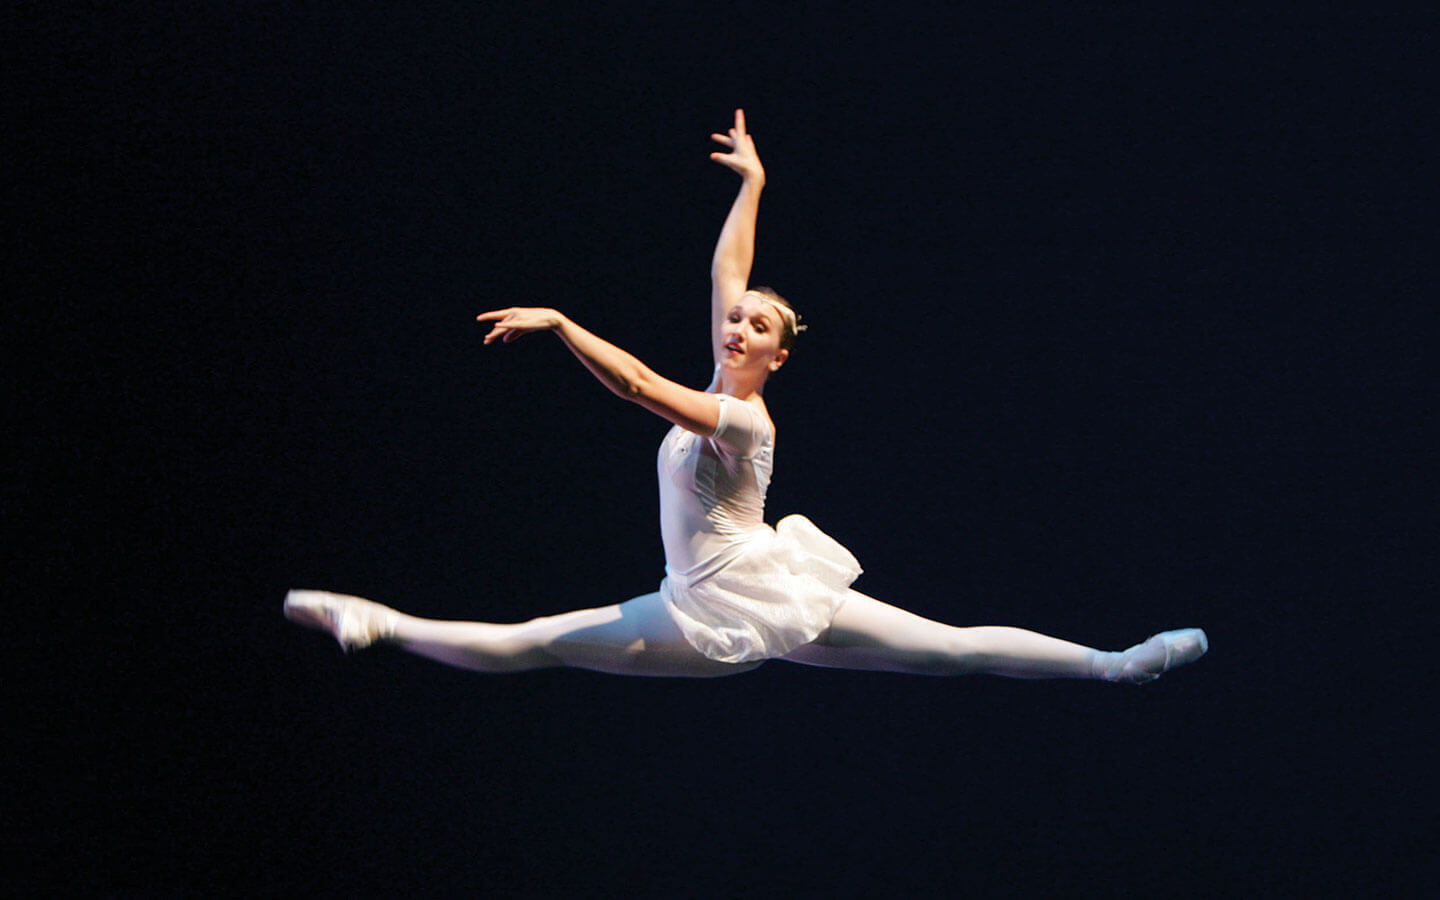 Ballerina jumping during a performance